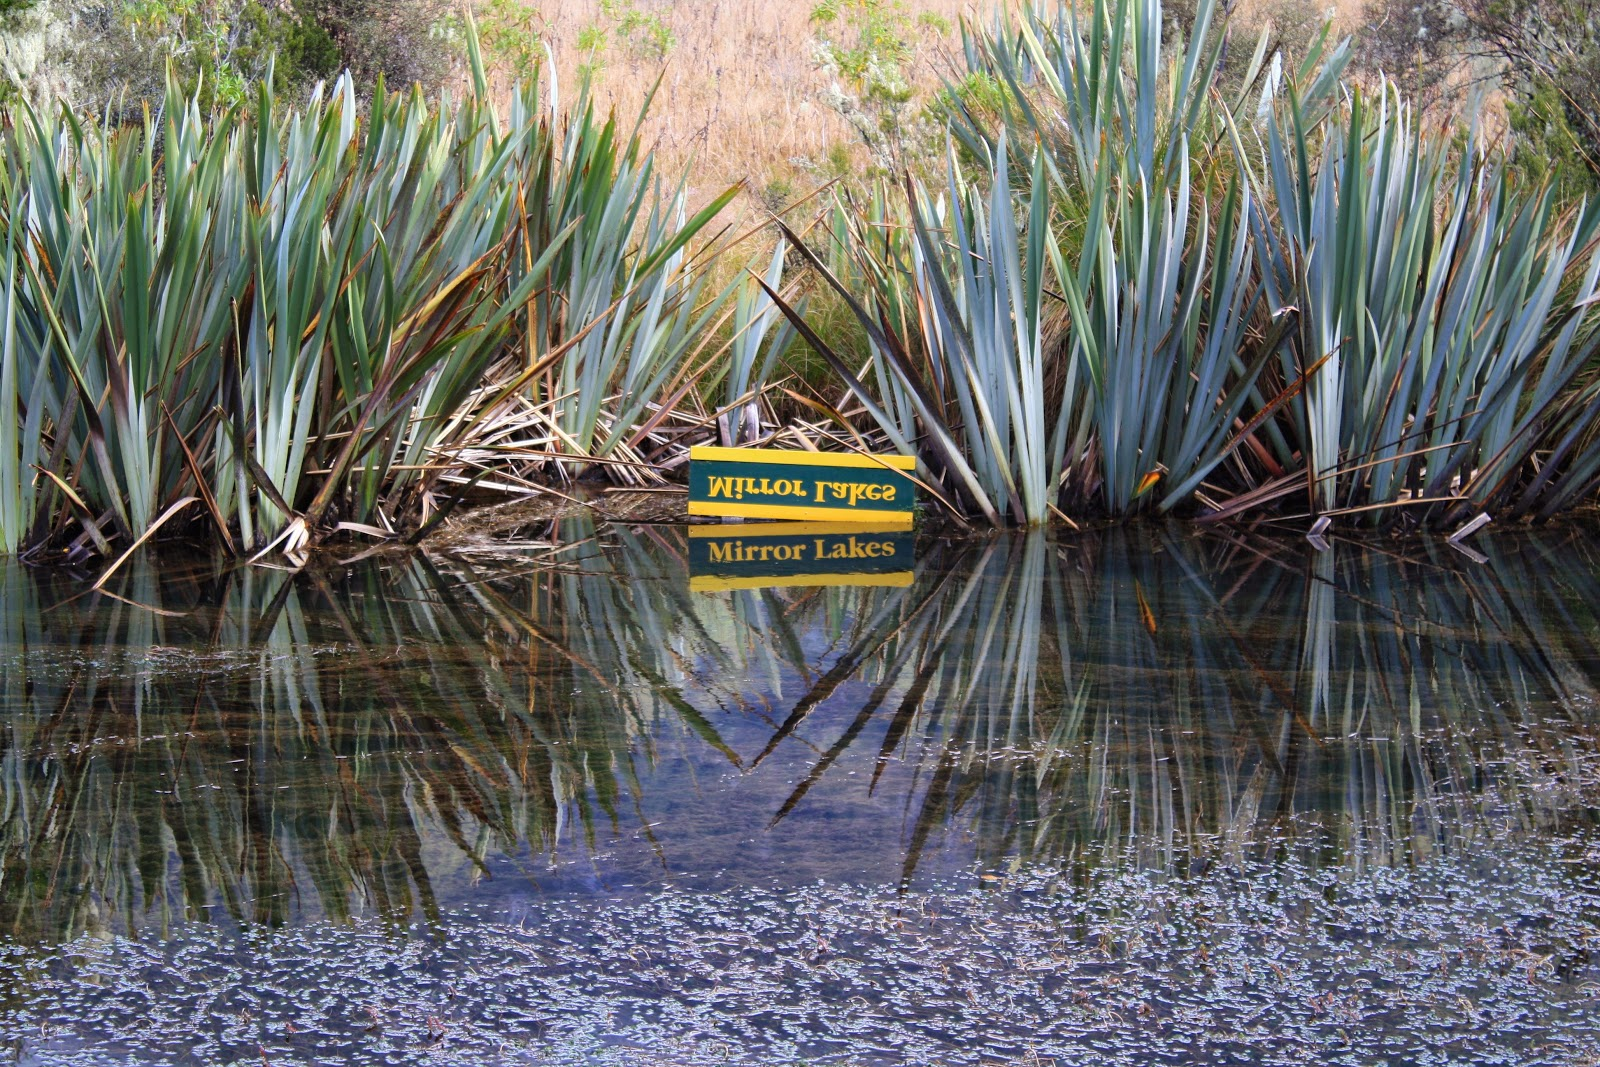 Mirror Lakes. There's a sign which is written in mirror image, and it's reflected in the lake so it reads properly.